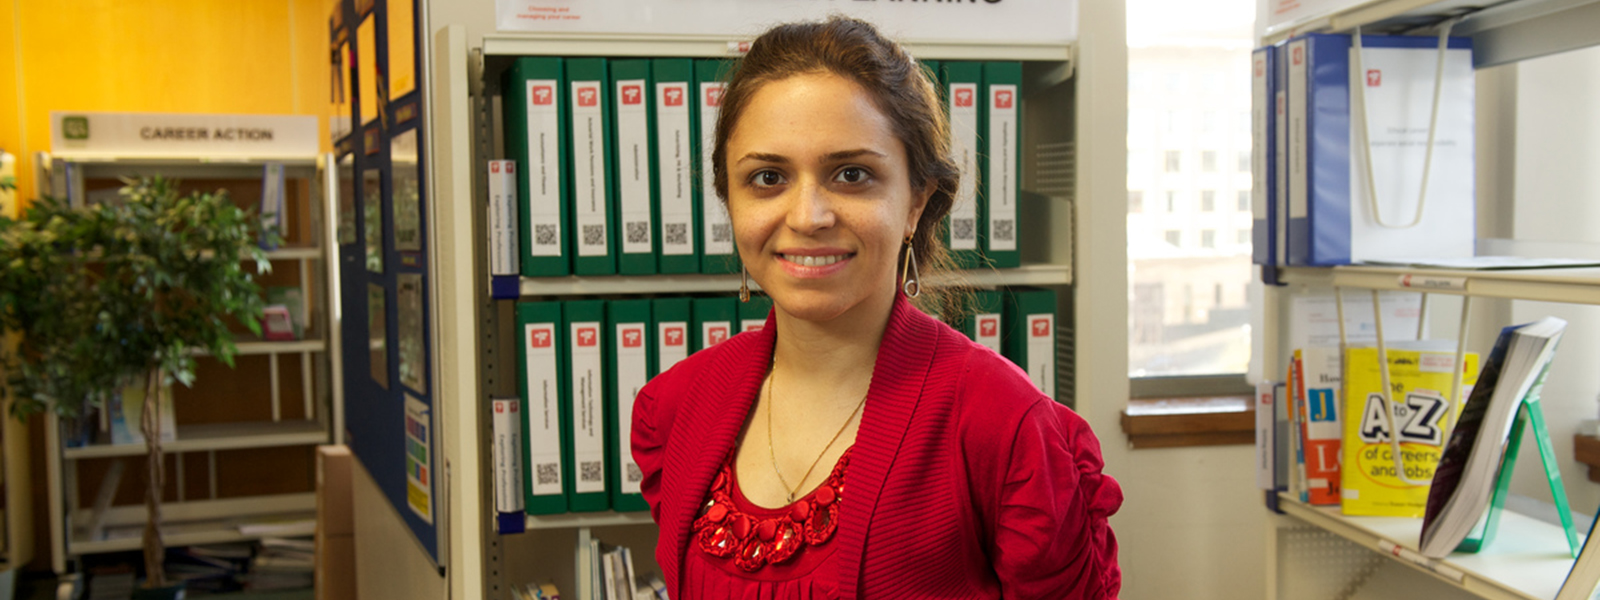 Bahareh Doroudian, Business Analysis & Consulting student (MSc)